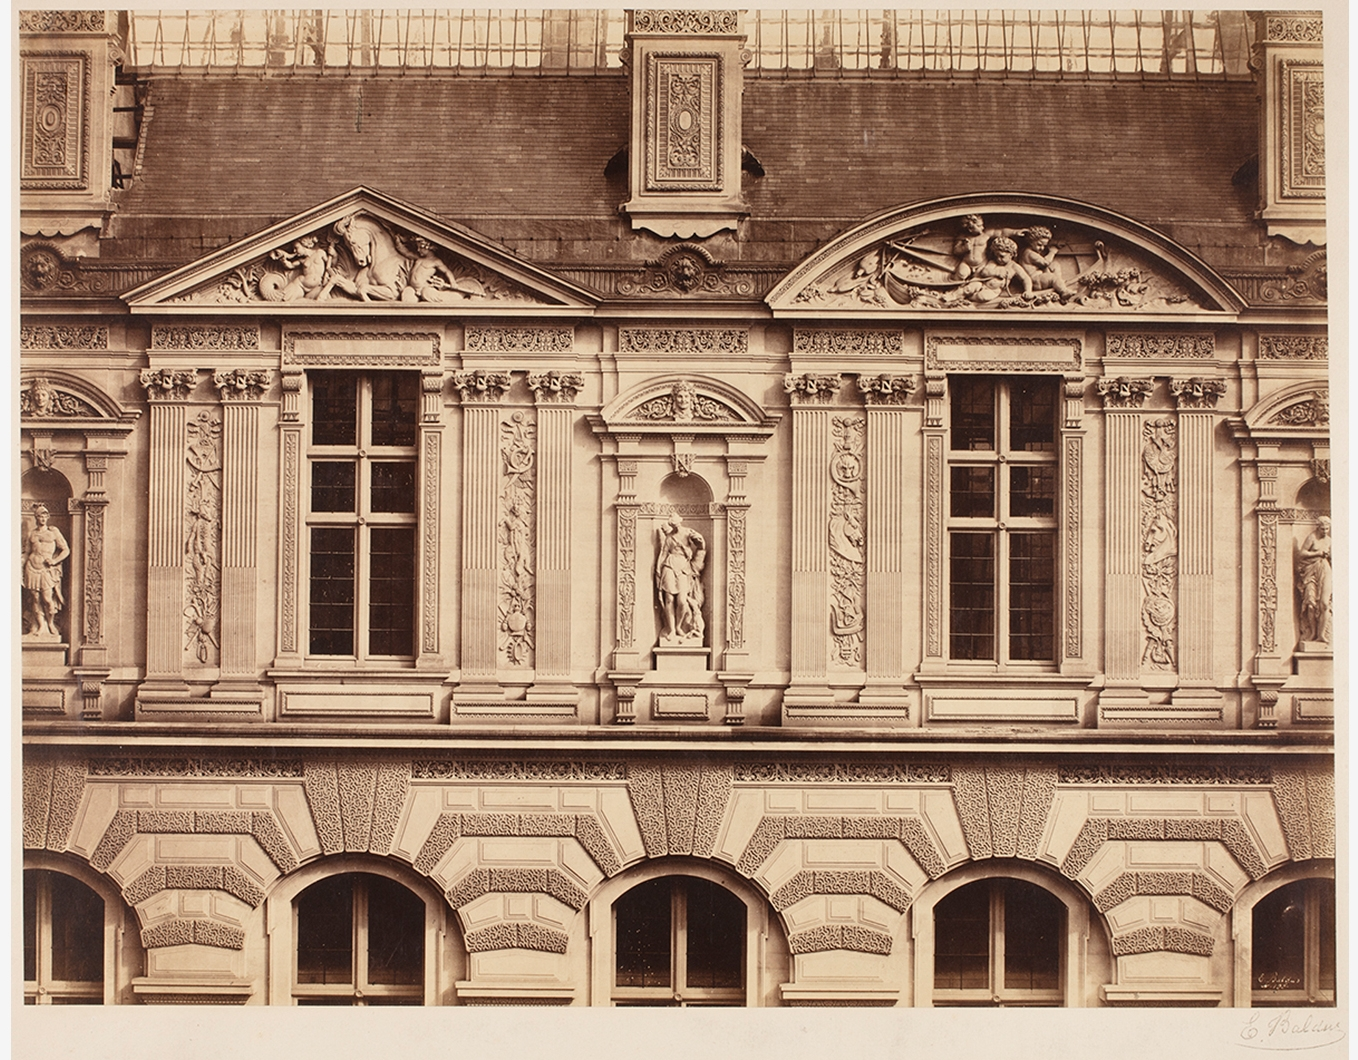 Image courtesy of the George Eastman Museum. Édouard Baldus (French, 1813–1889). The Louvre, ca. 1855. Albumen silver print. George Eastman Museum, gift of Eastman Kodak Company, ex-collection Gabriel Cromer